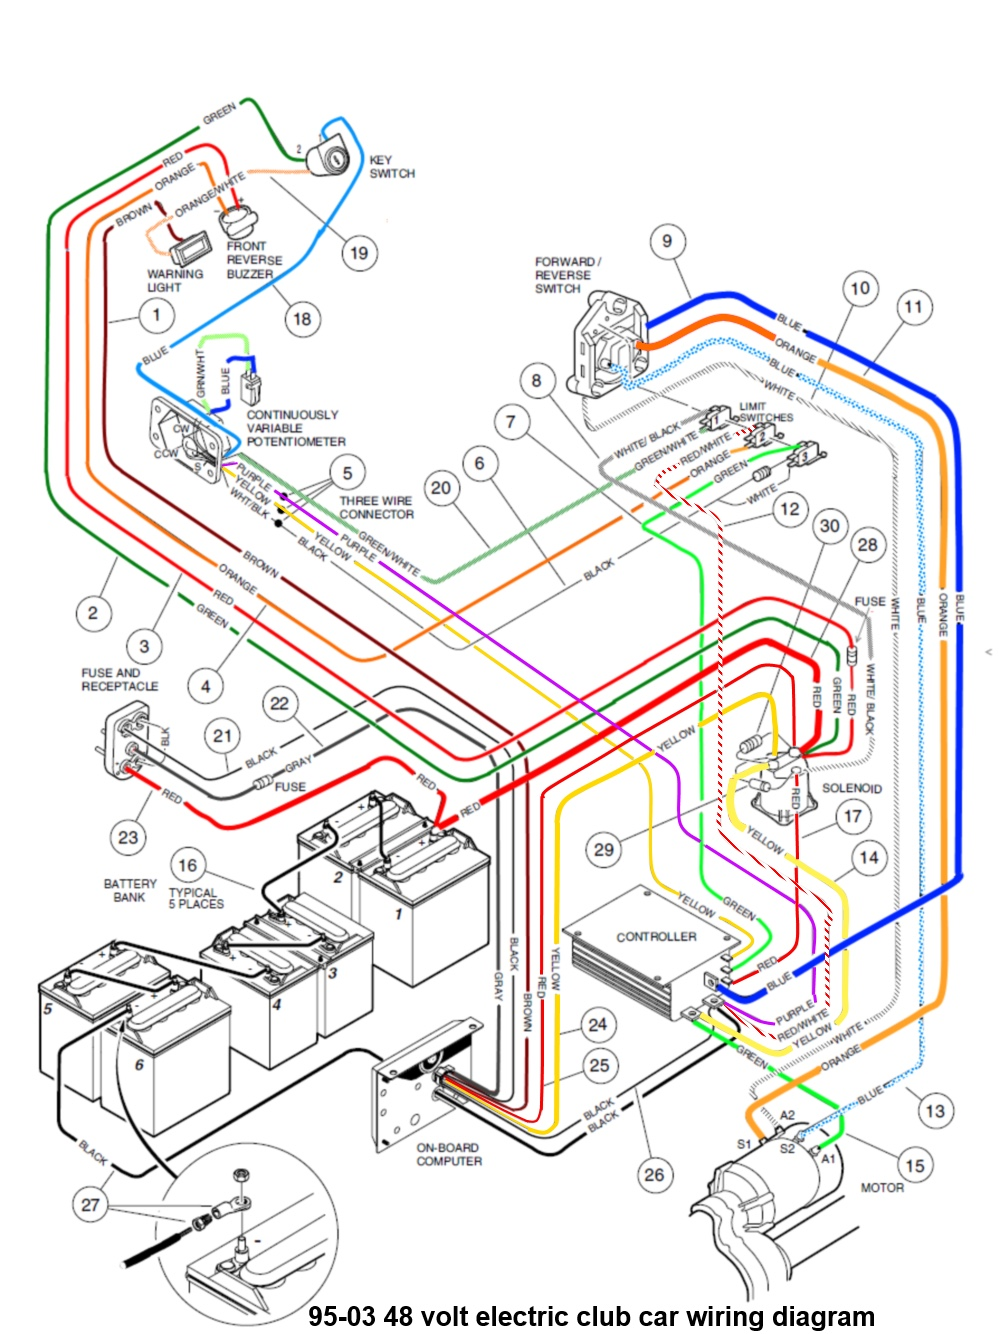 Club Car Wiring Diagram Lights : Club car top speed doesn t seem right page